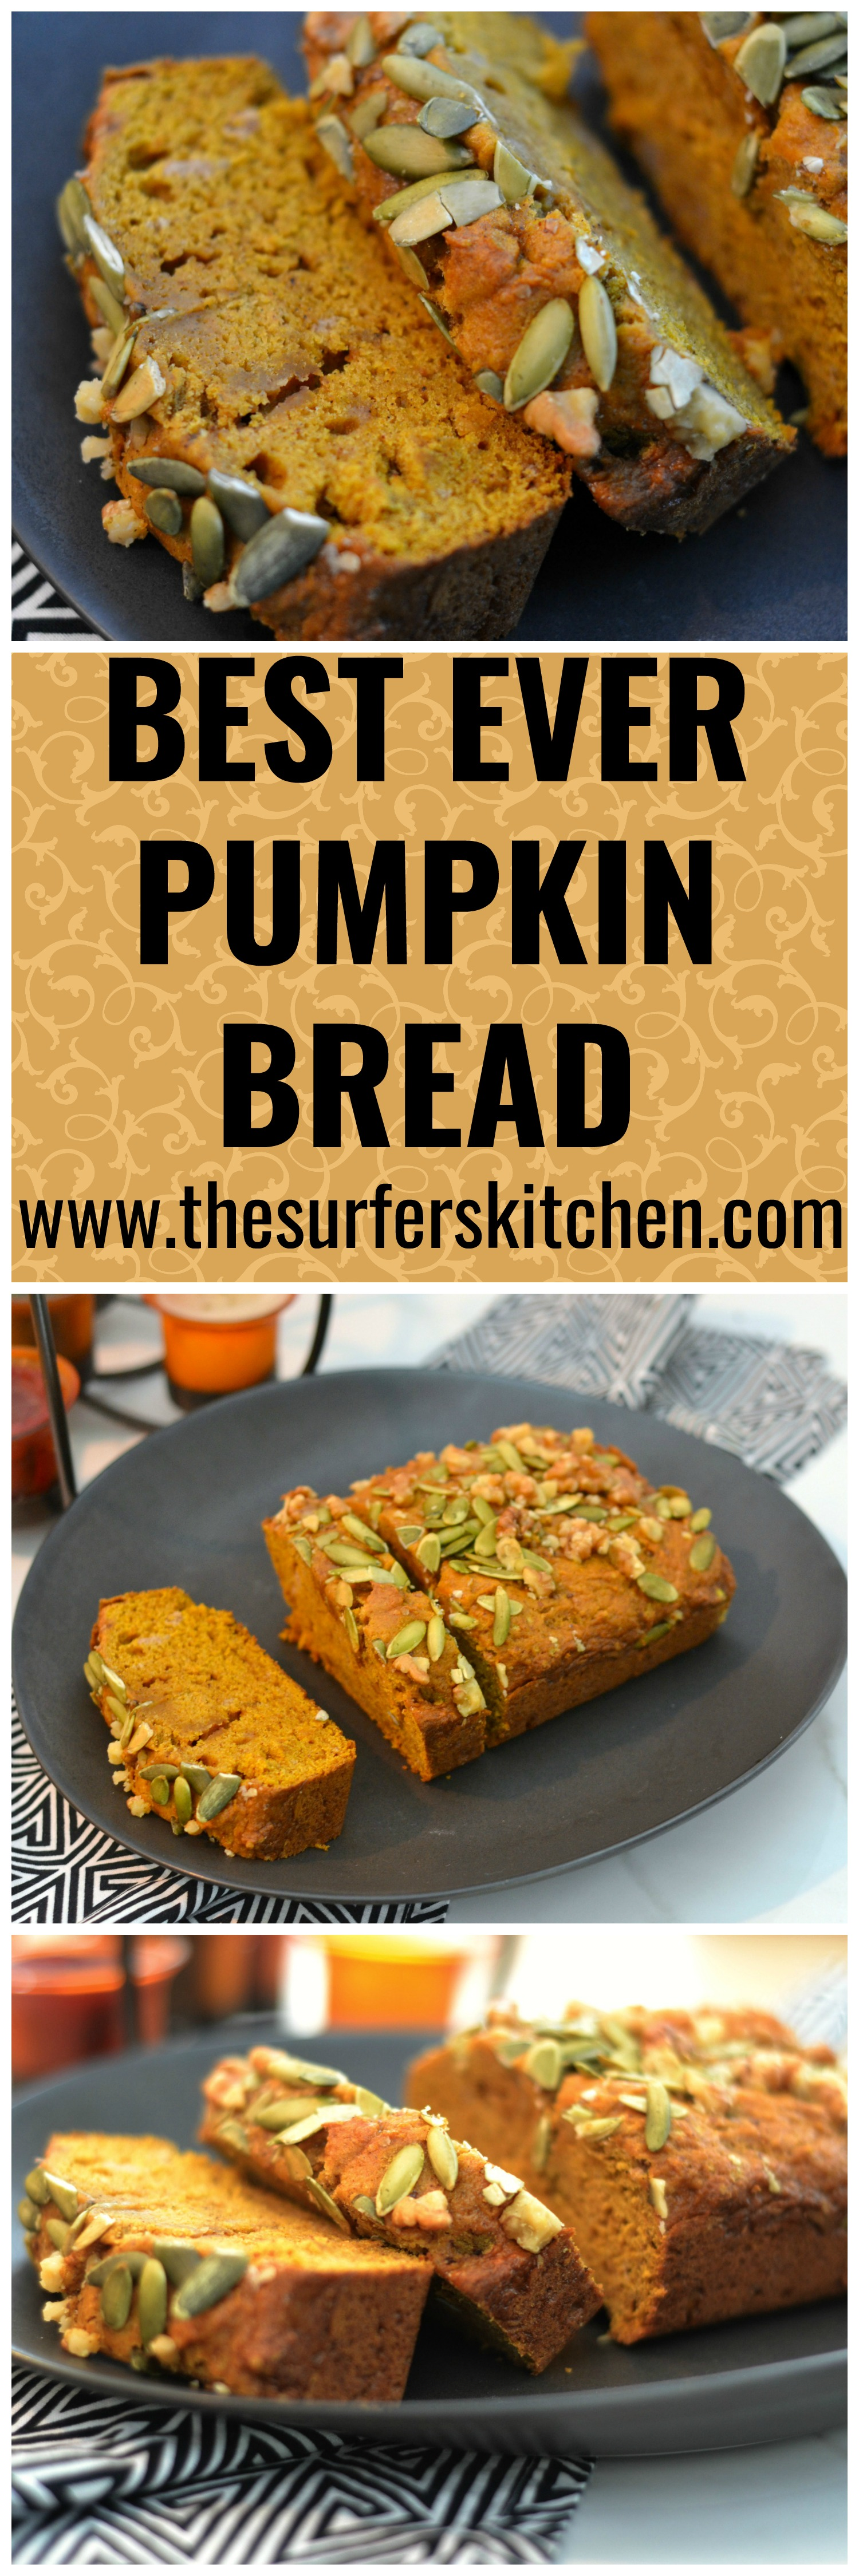 Best Ever Pumpkin Bread that rivals that of Starbucks and other bakeries. Not too spicy, not too sweet. Just perfect. Enjoy! | www.thesurferskitchen.com